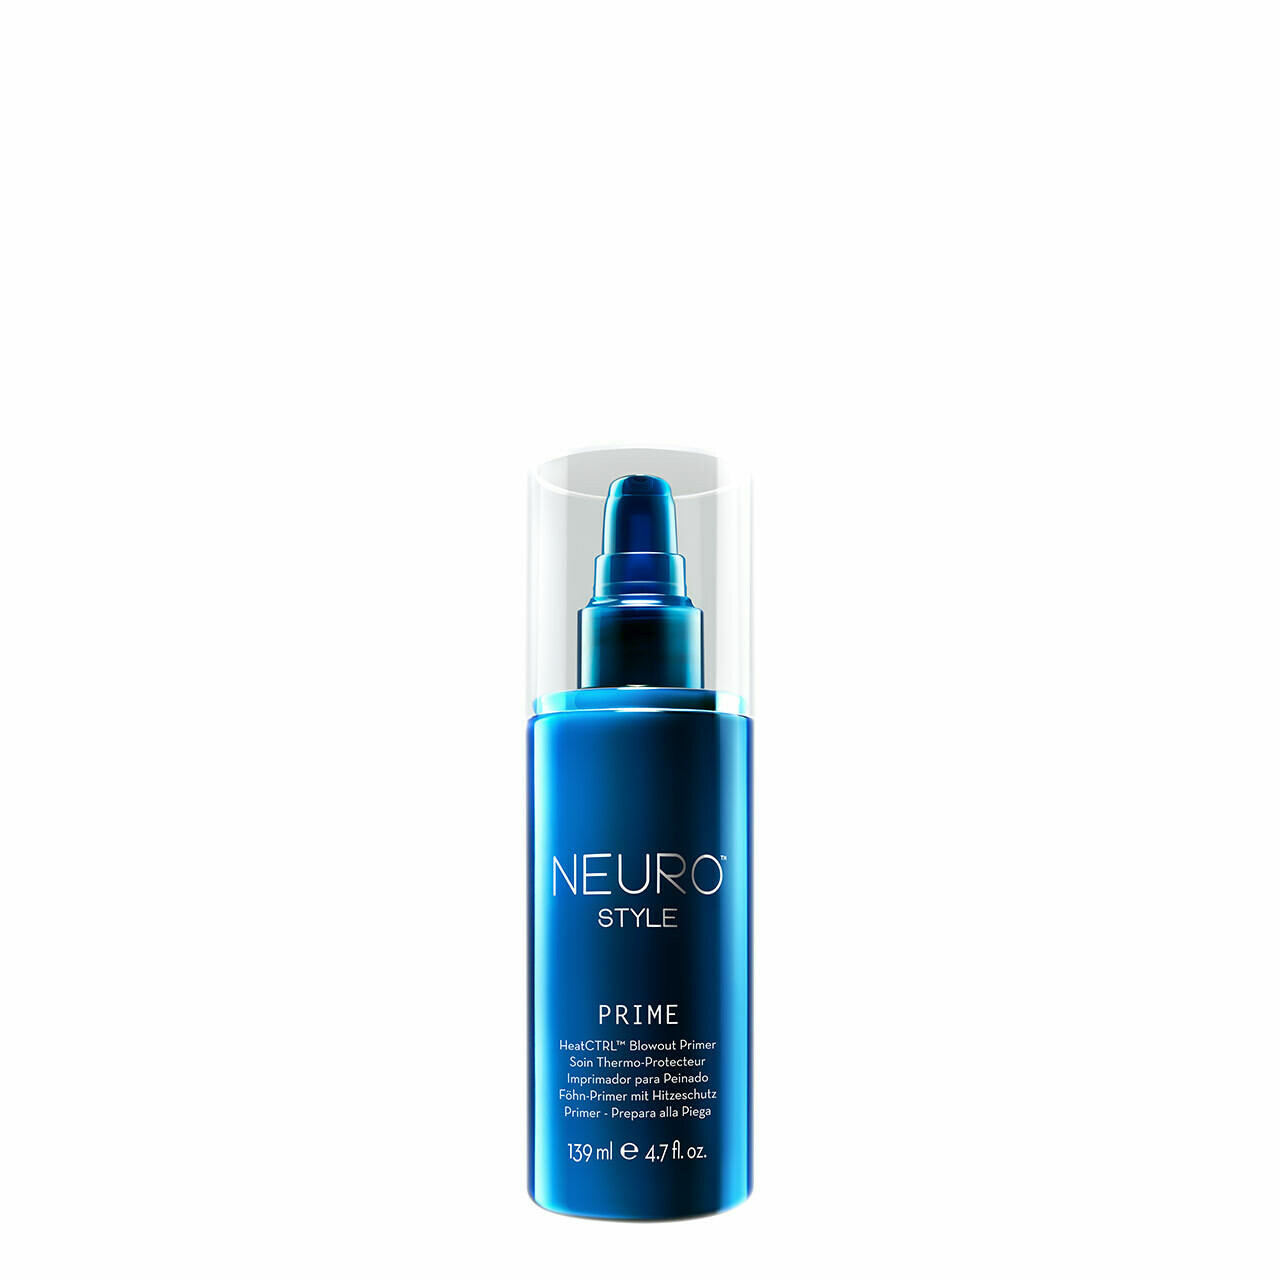 Neuro Blowout Primer 139ml